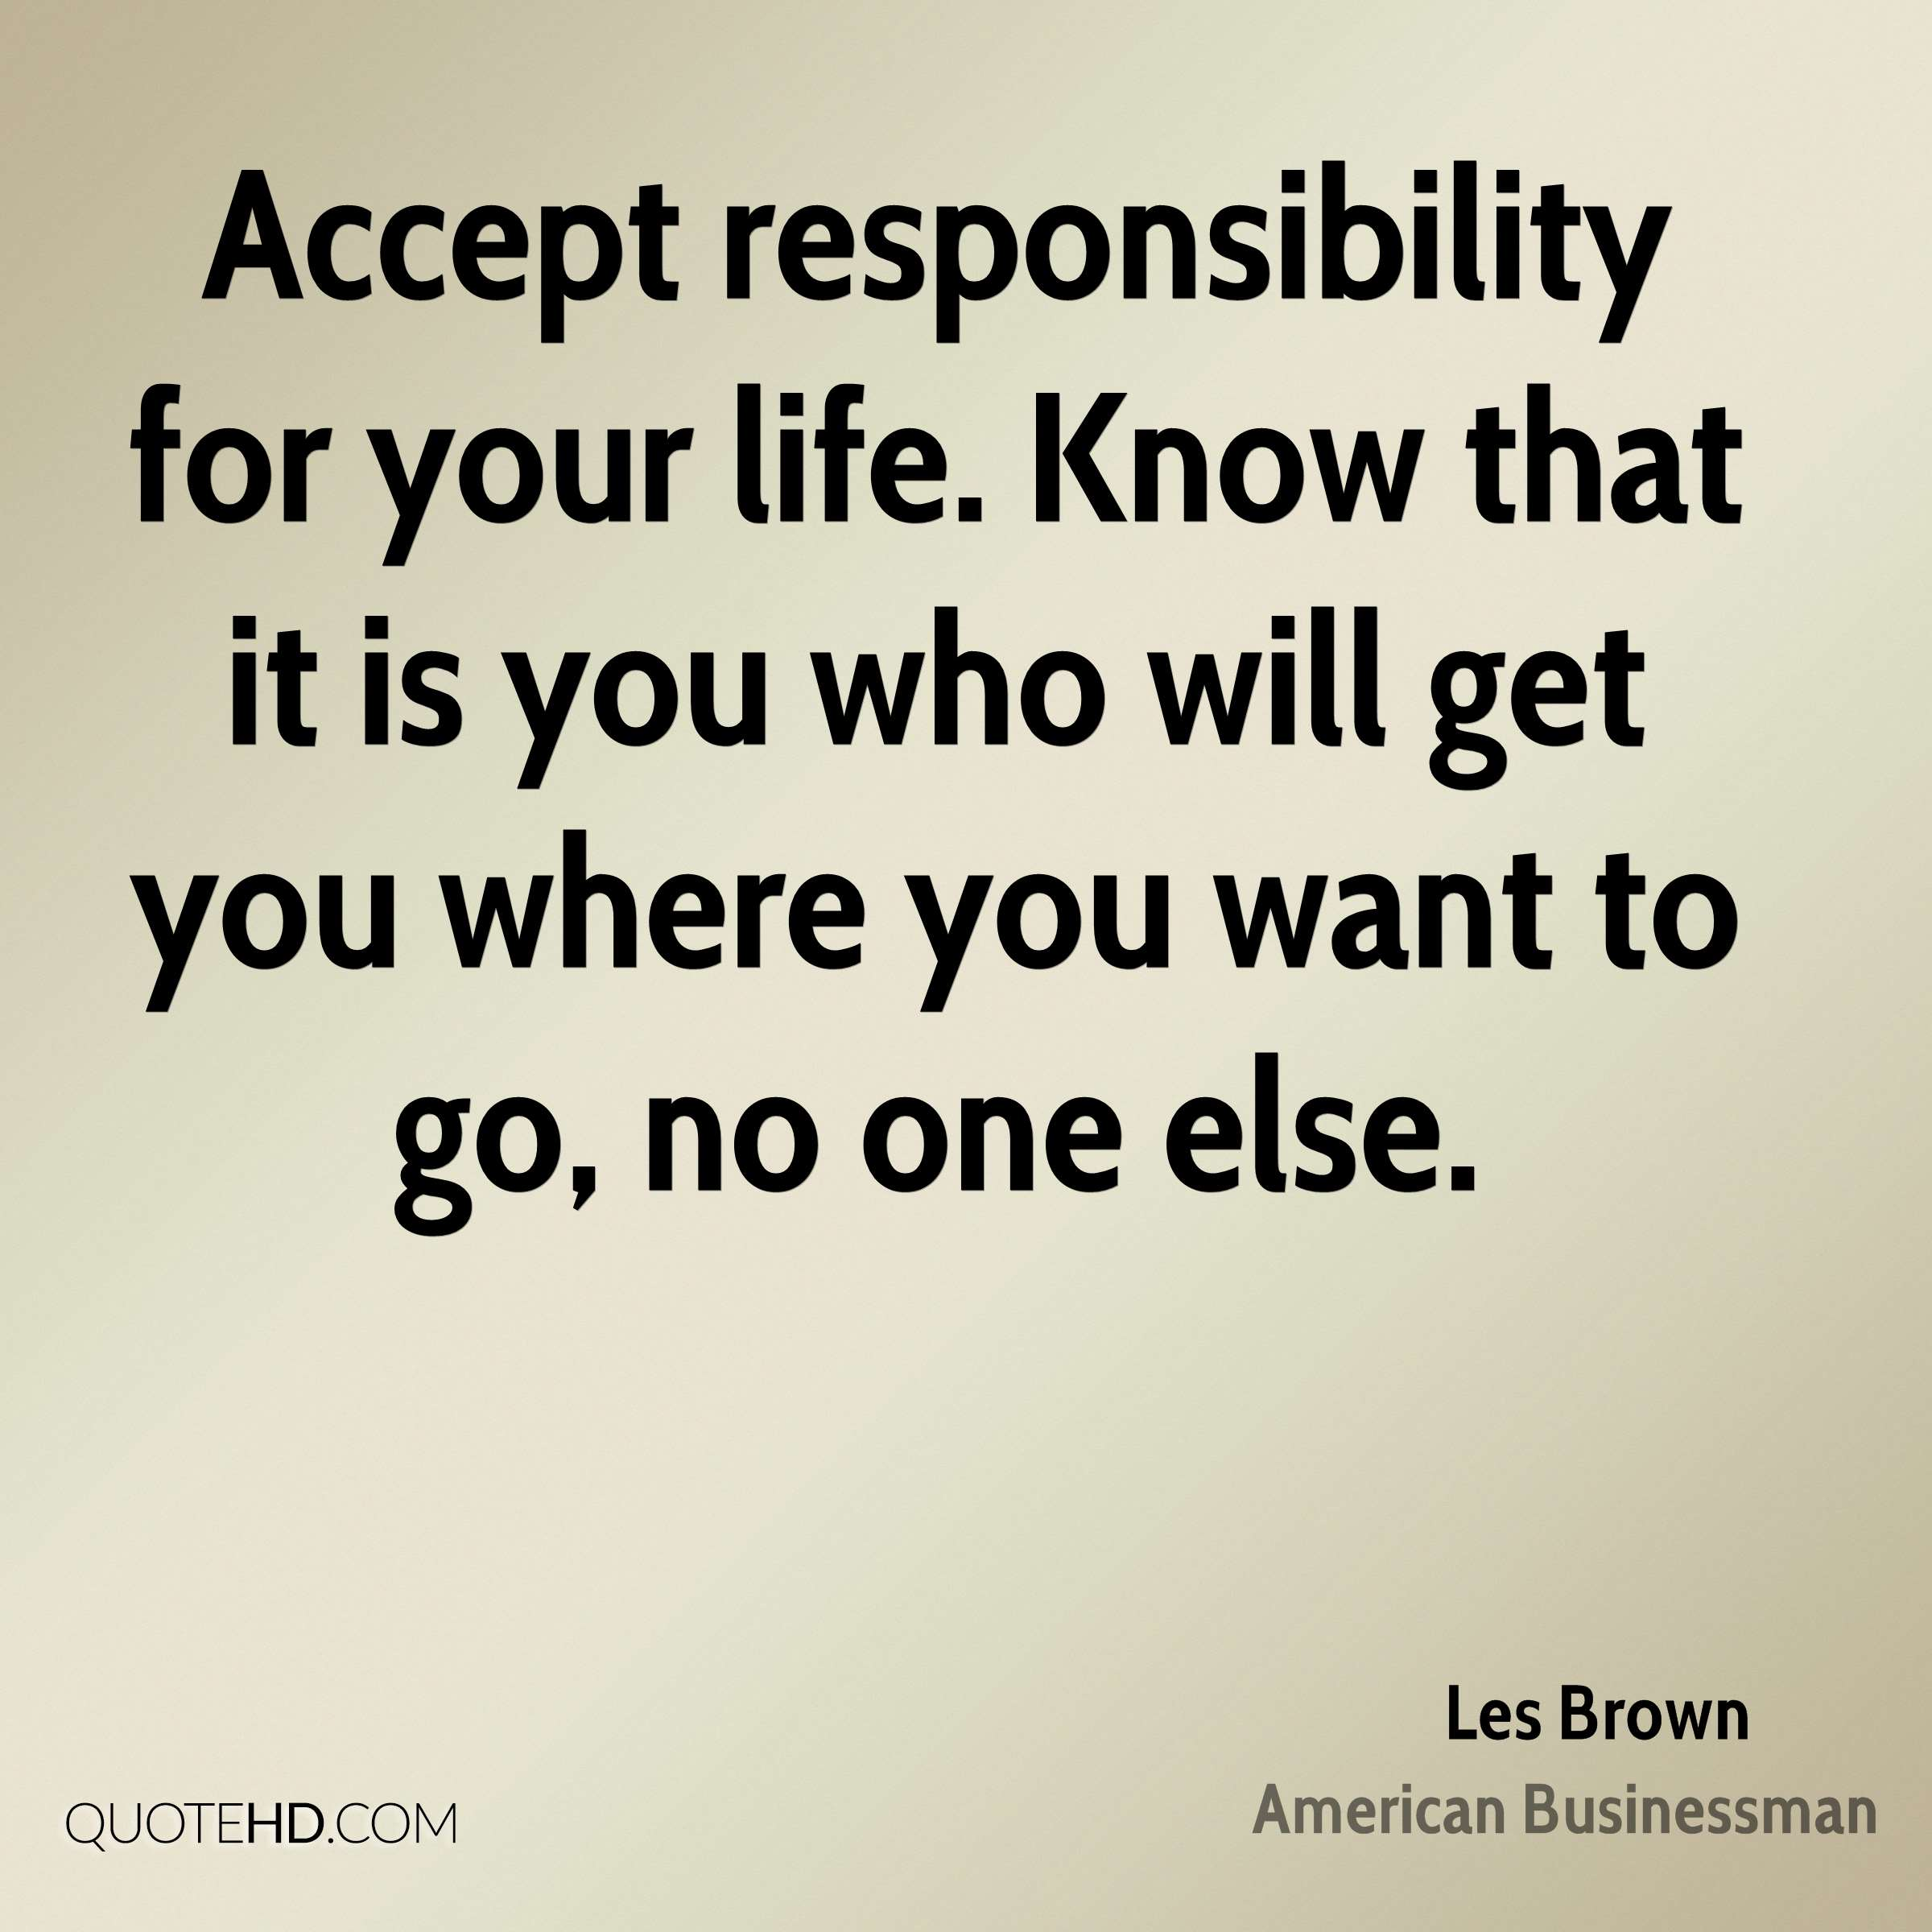 Accept responsibility for your life. Know that it is you who will get you where you want to go, no one else.